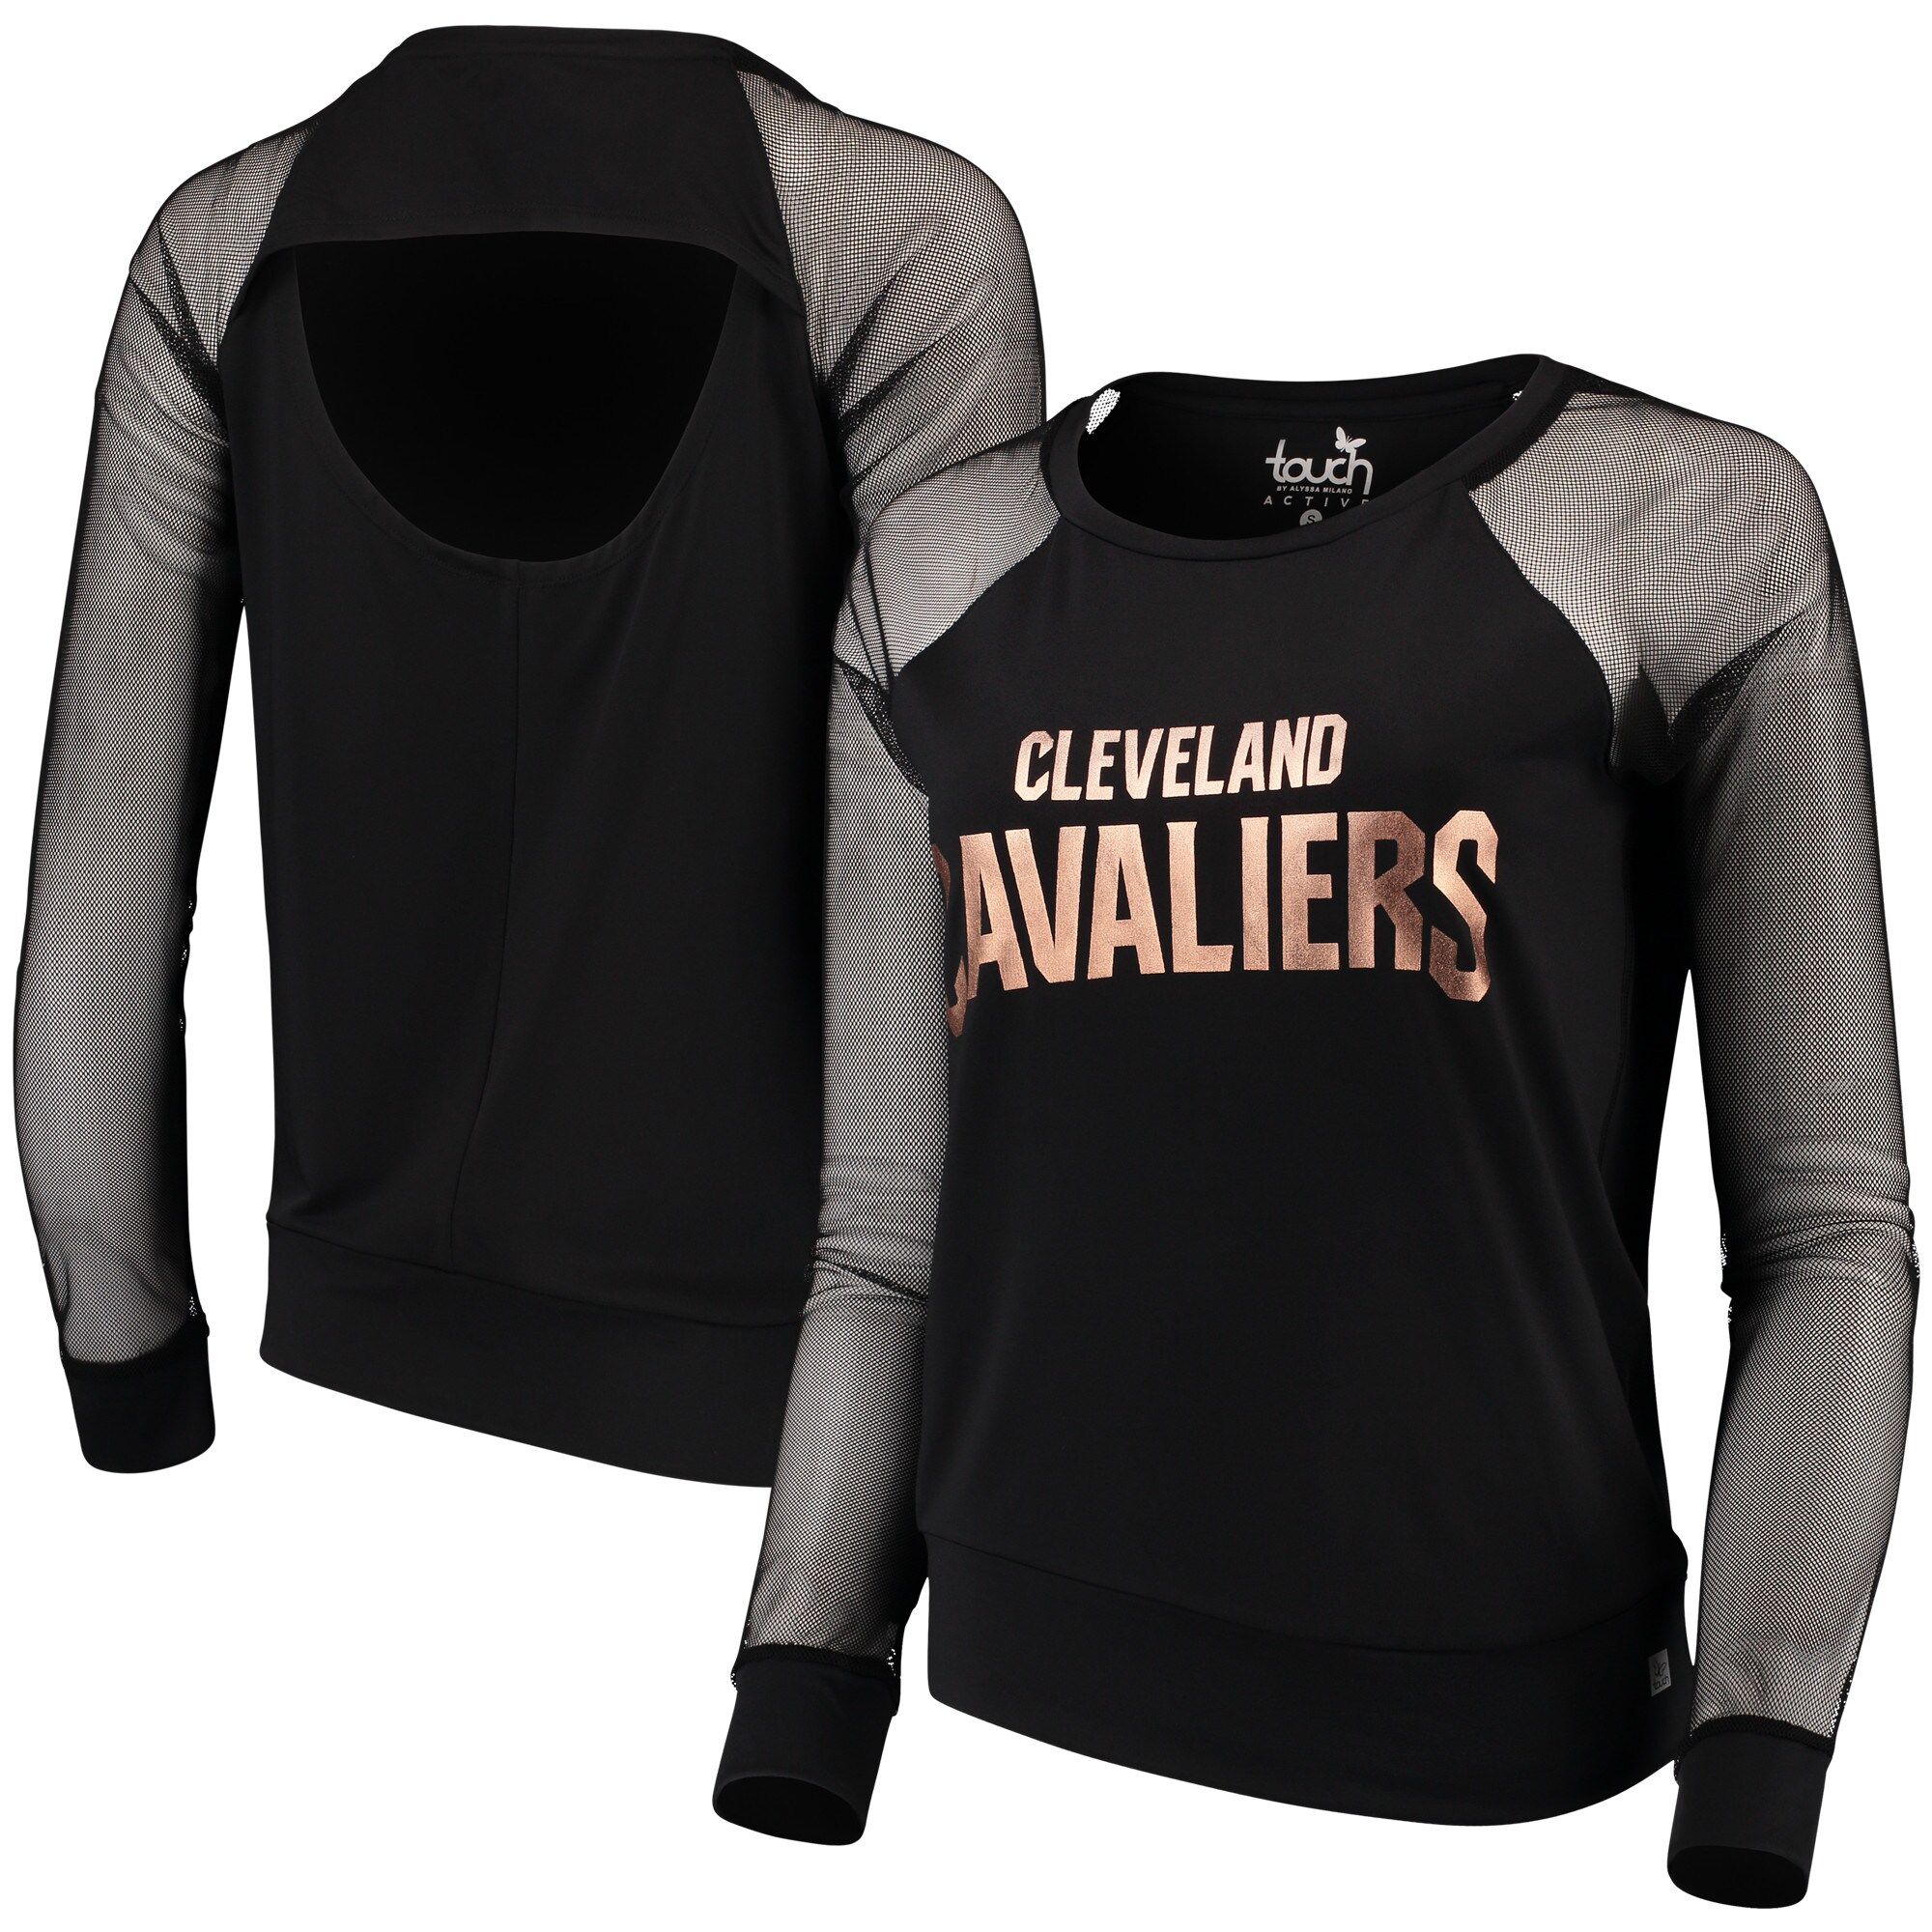 Cleveland Cavaliers Touch by Alyssa Milano Women's Make the Cut Long Sleeve Top - Black